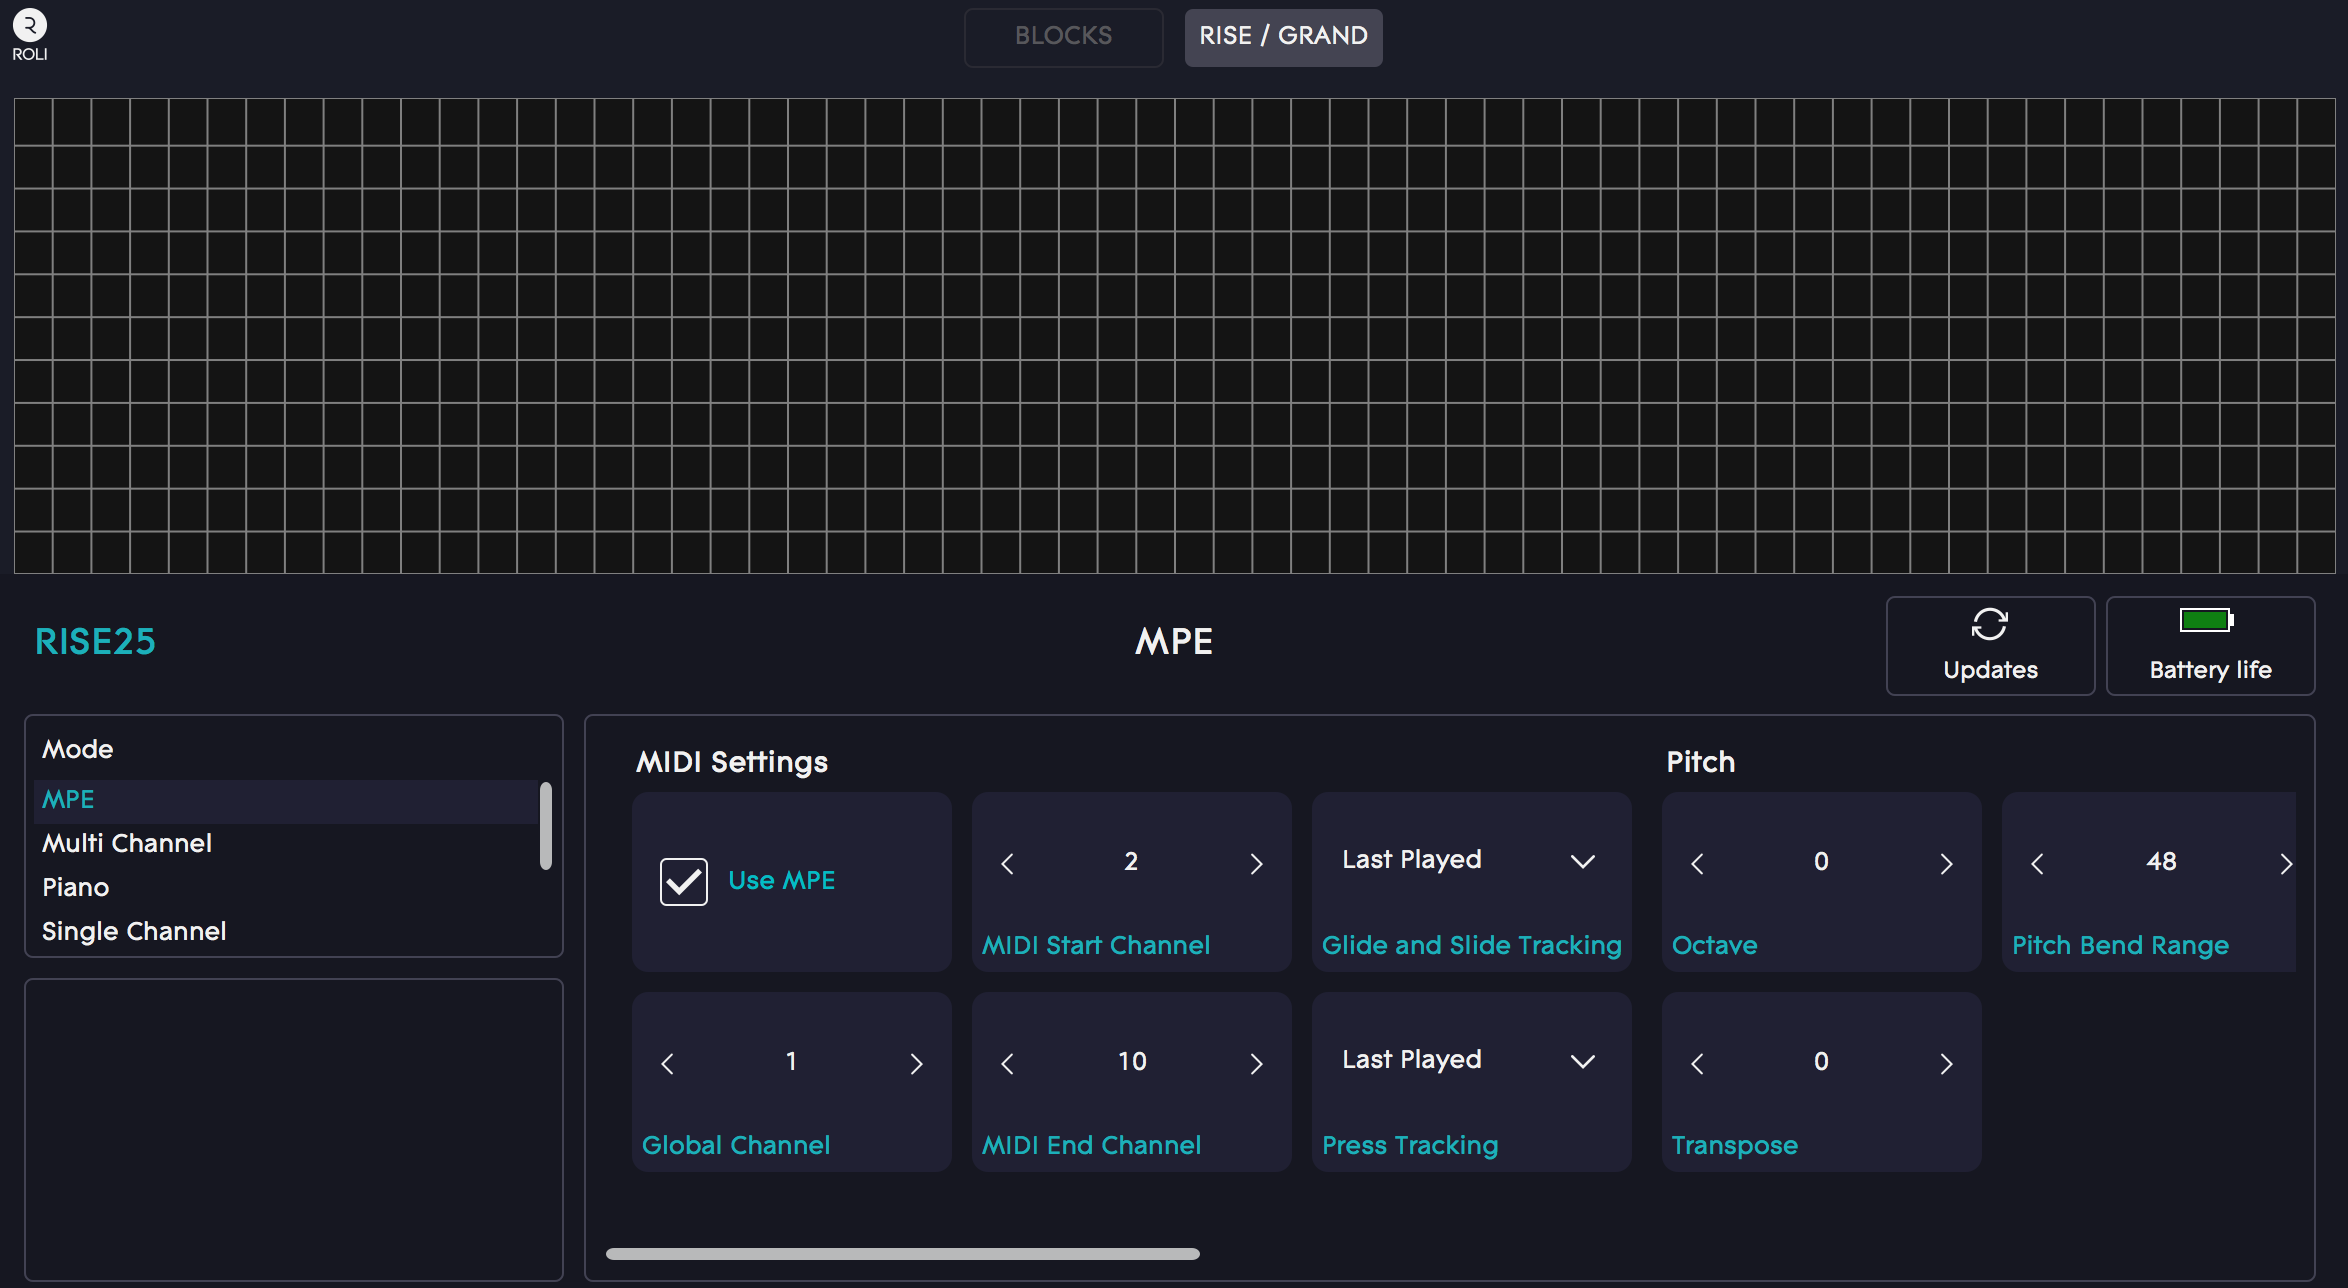 ROLI Dashboard – SynthMaster settings